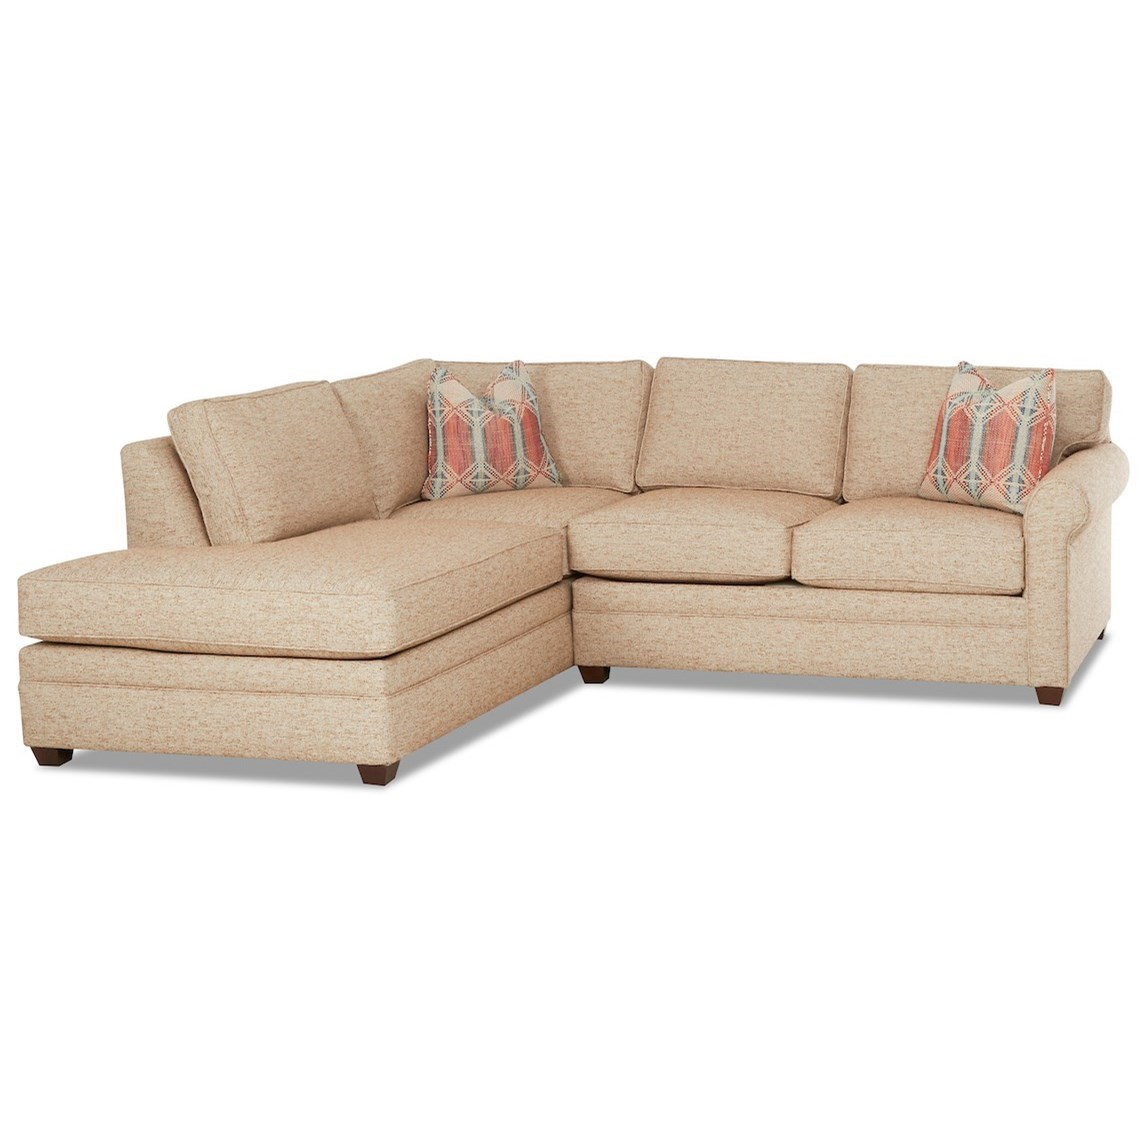 Living Your Way 2-Piece Sectional Sofa w/ LAF Sofa Chaise by Klaussner at Northeast Factory Direct